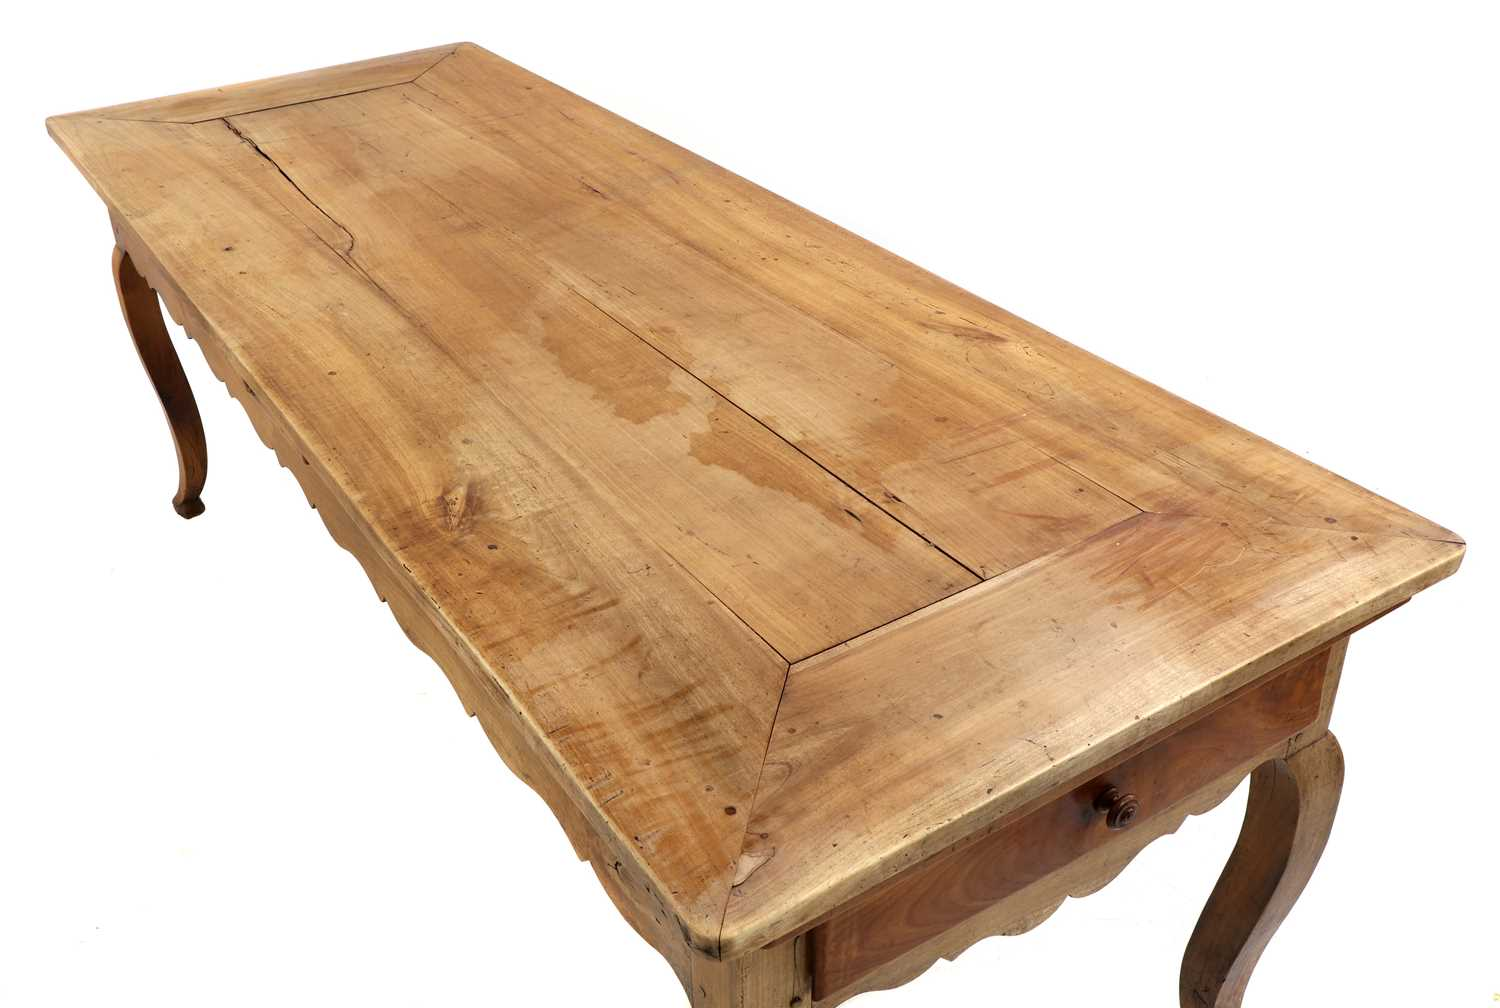 A French provincial sycamore kitchen table, - Image 6 of 10